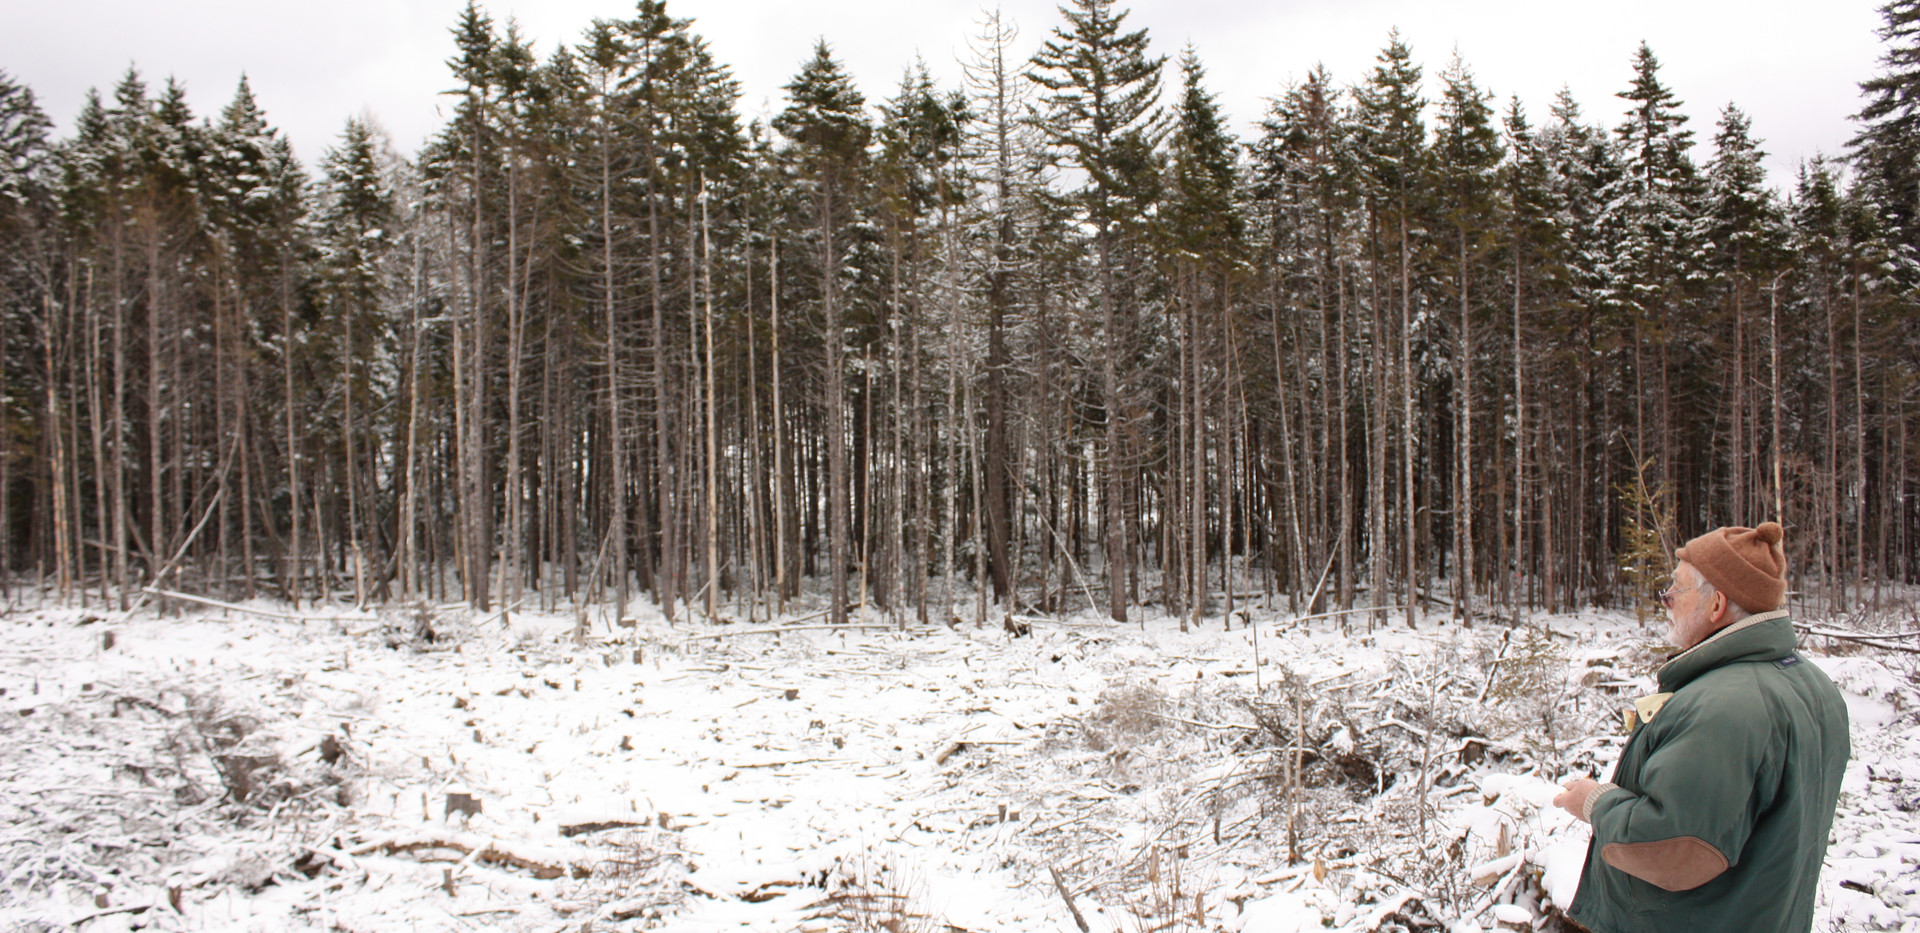 A clearcut found within the area